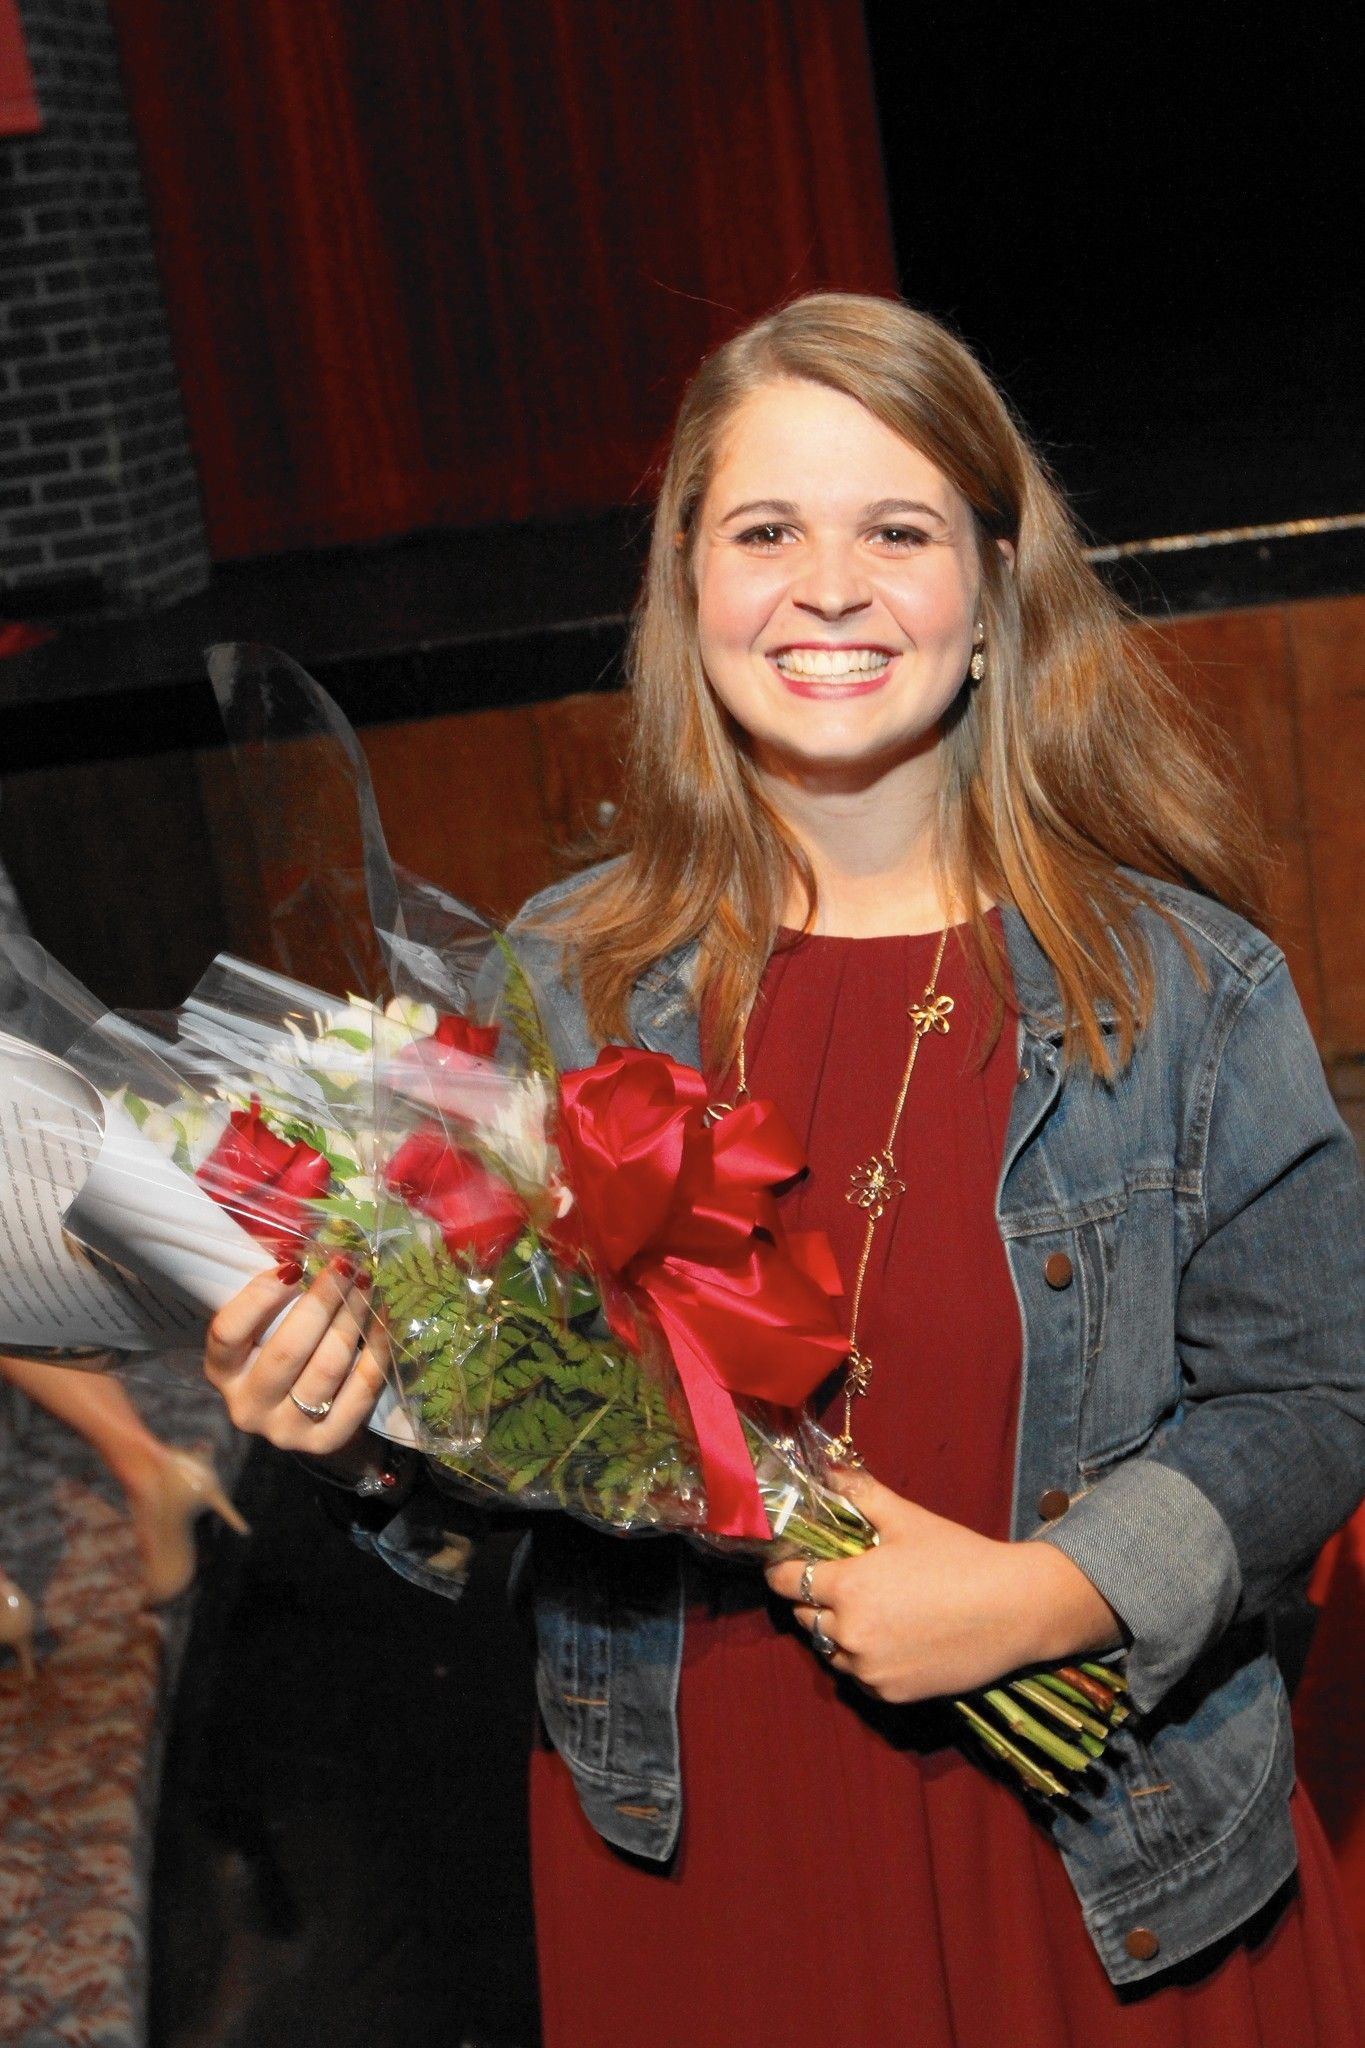 McAuley honors pair for Mercy Day Honor, High school